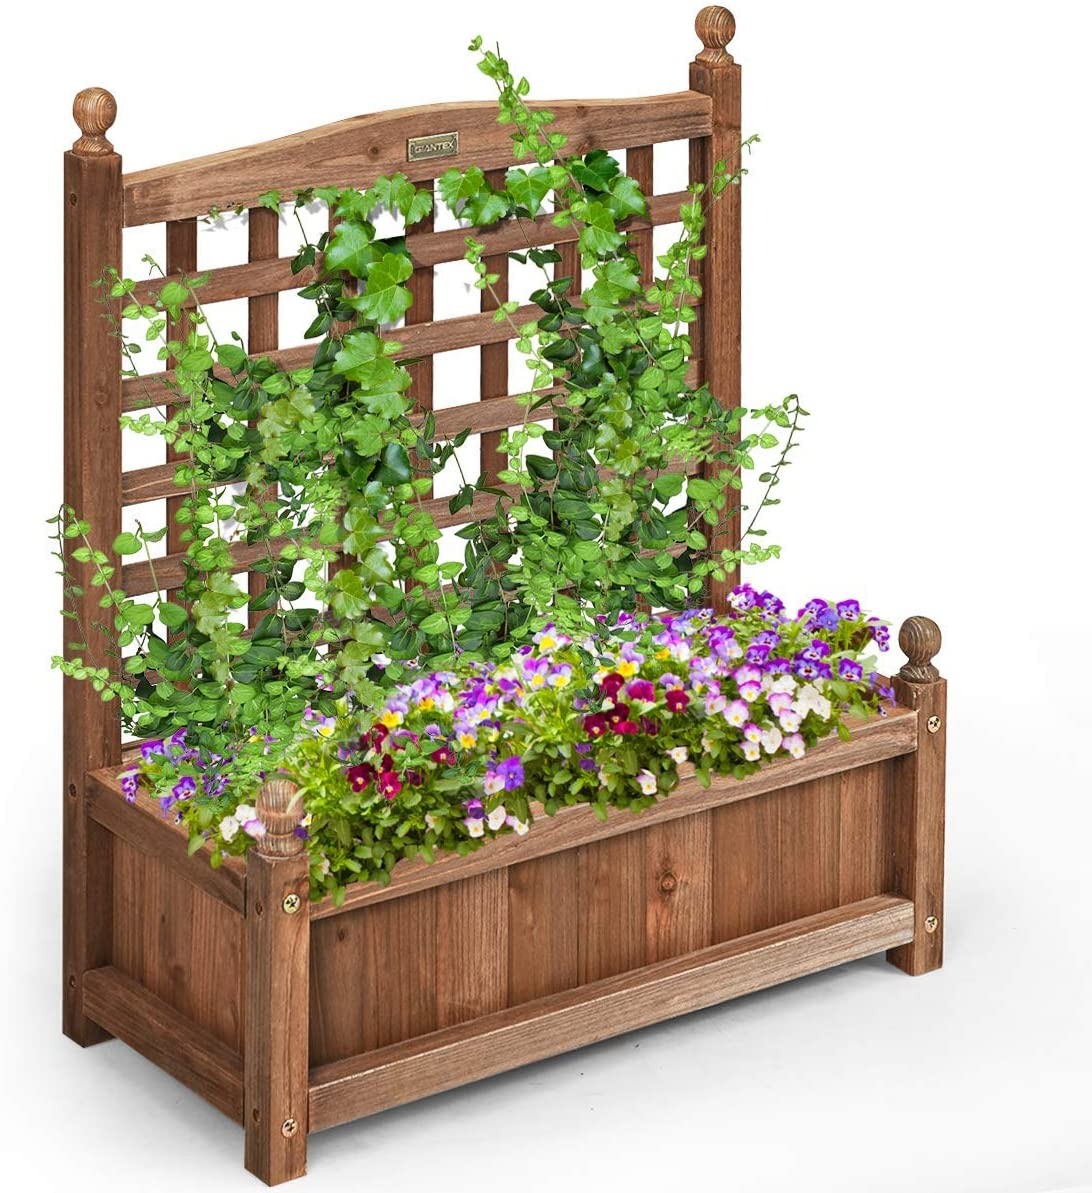 Giantex Wood Planter Free Standing Plant Raised Bed with Trellis for Garden or Yard 25 LX11 WX 30 H